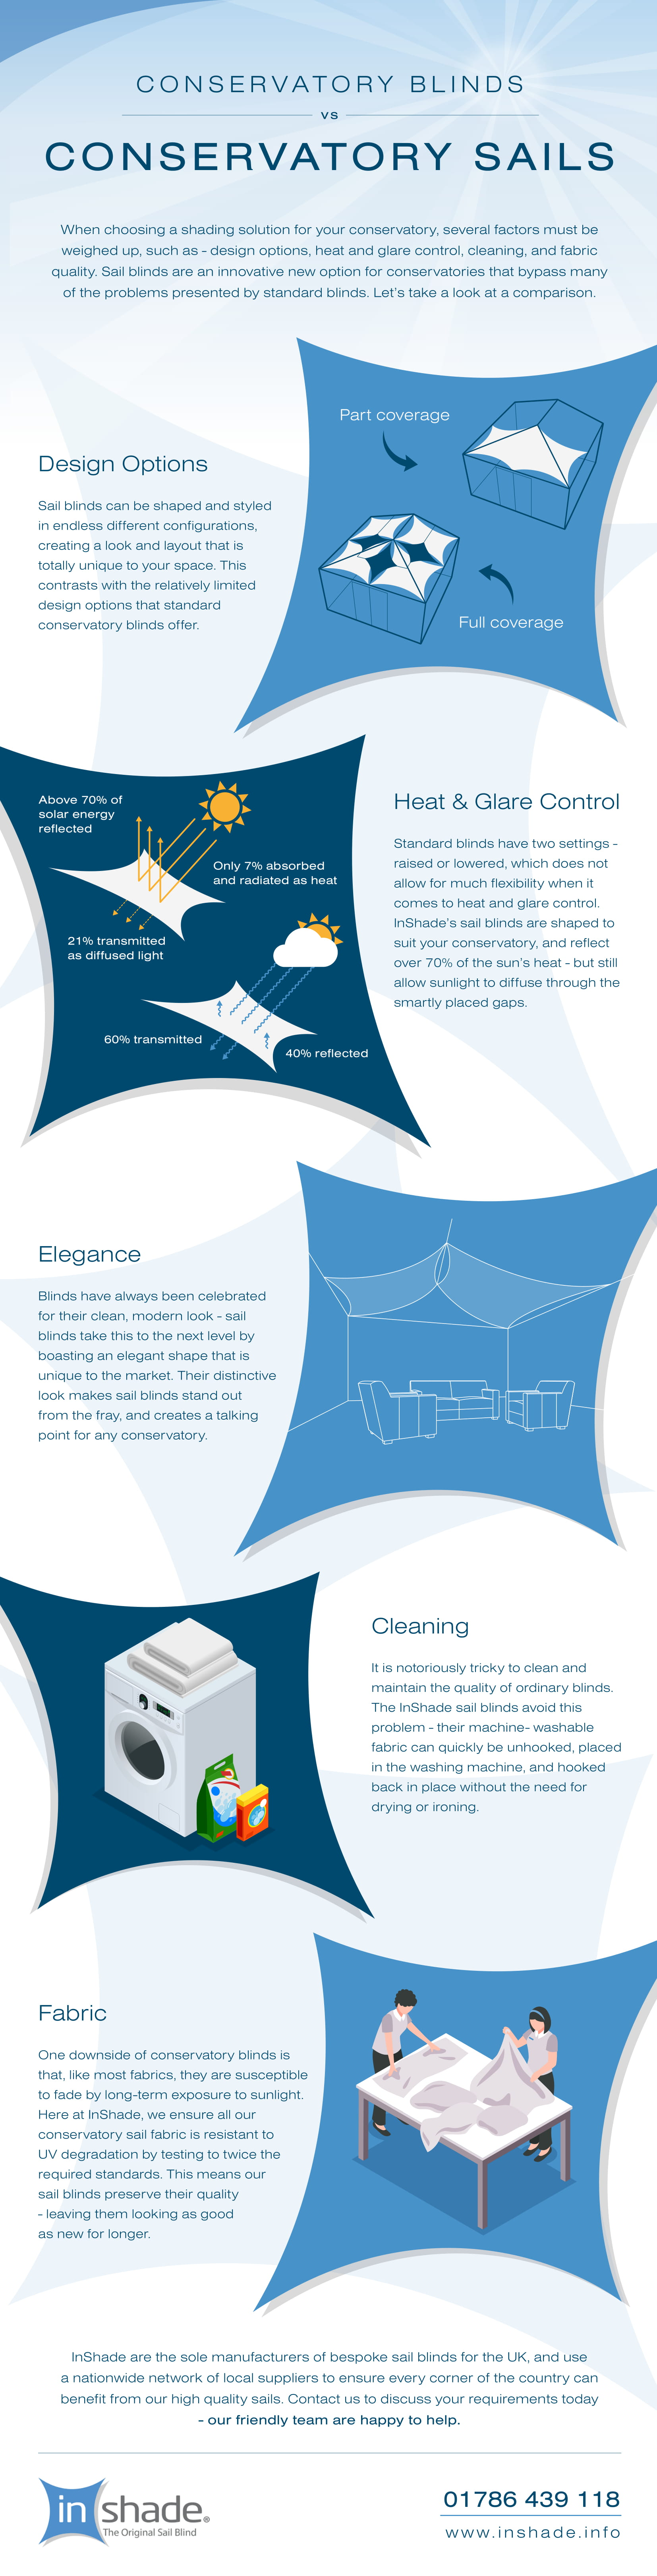 sails vs blinds infographic